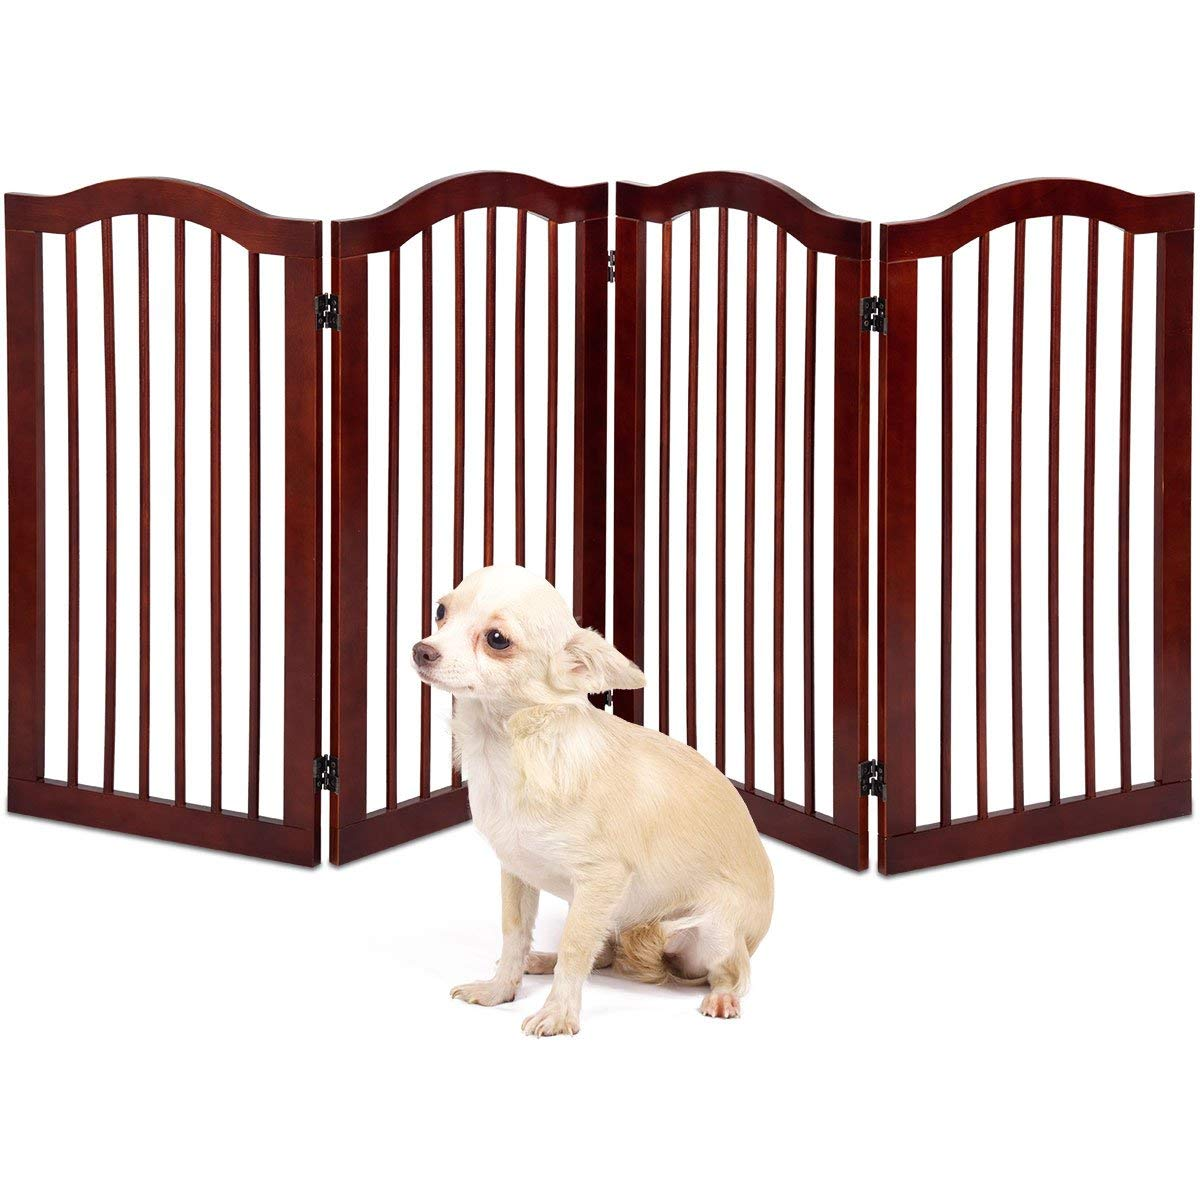 Giantex 4 Panel Wood Dog Gate Pet Fence Barrier Folding Freestanding Doorway Fence Doggie Puppy Fencing Enclosure System Indoor Safety Gate for Dogs (36'')